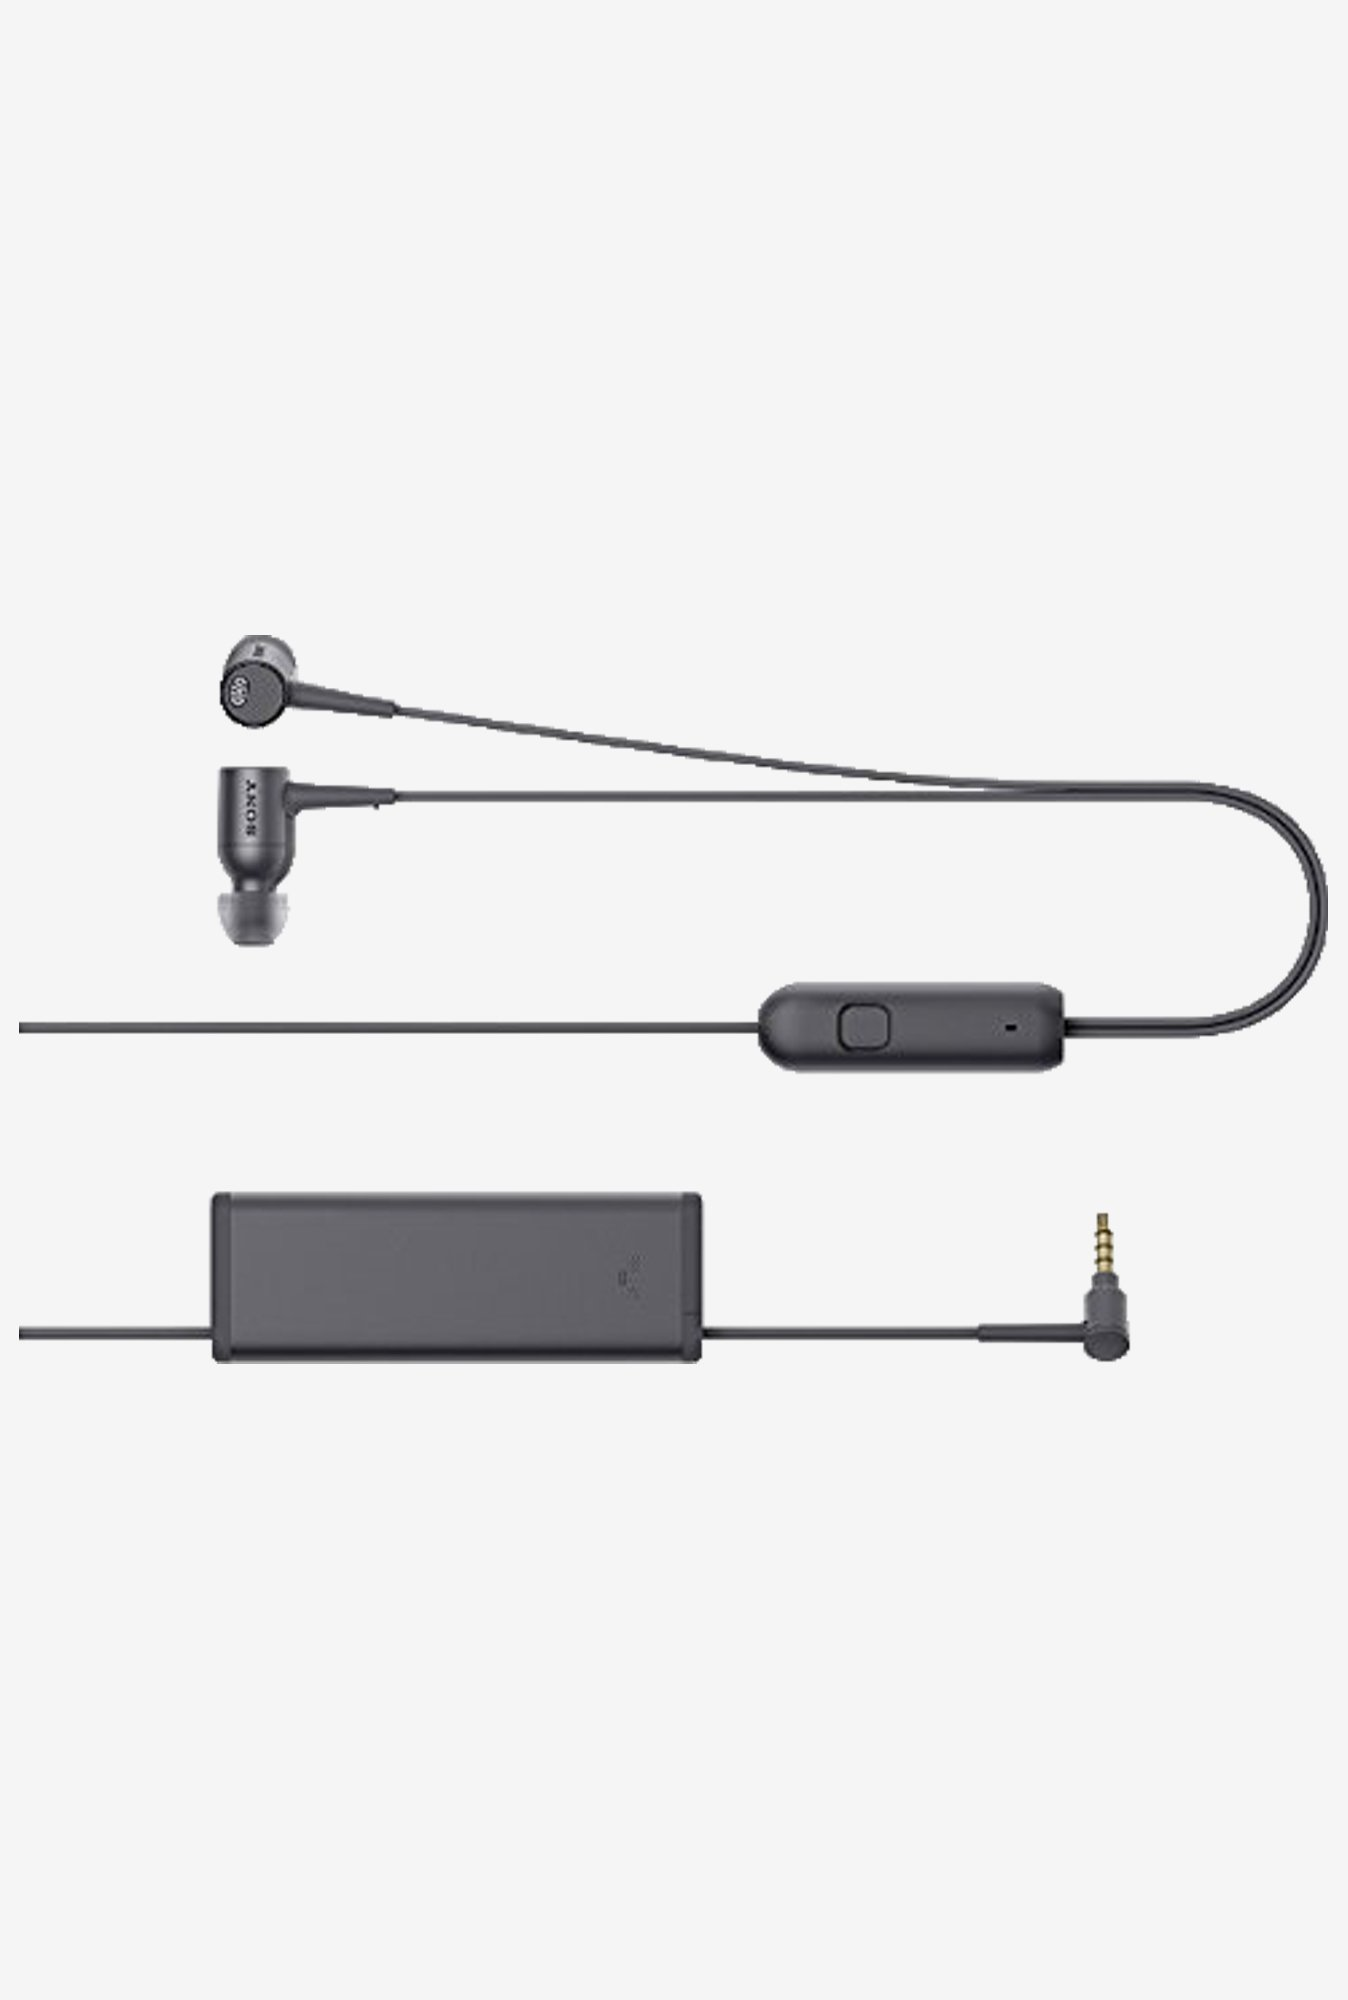 Sony h.ear In The Ear type noise canceling earphone